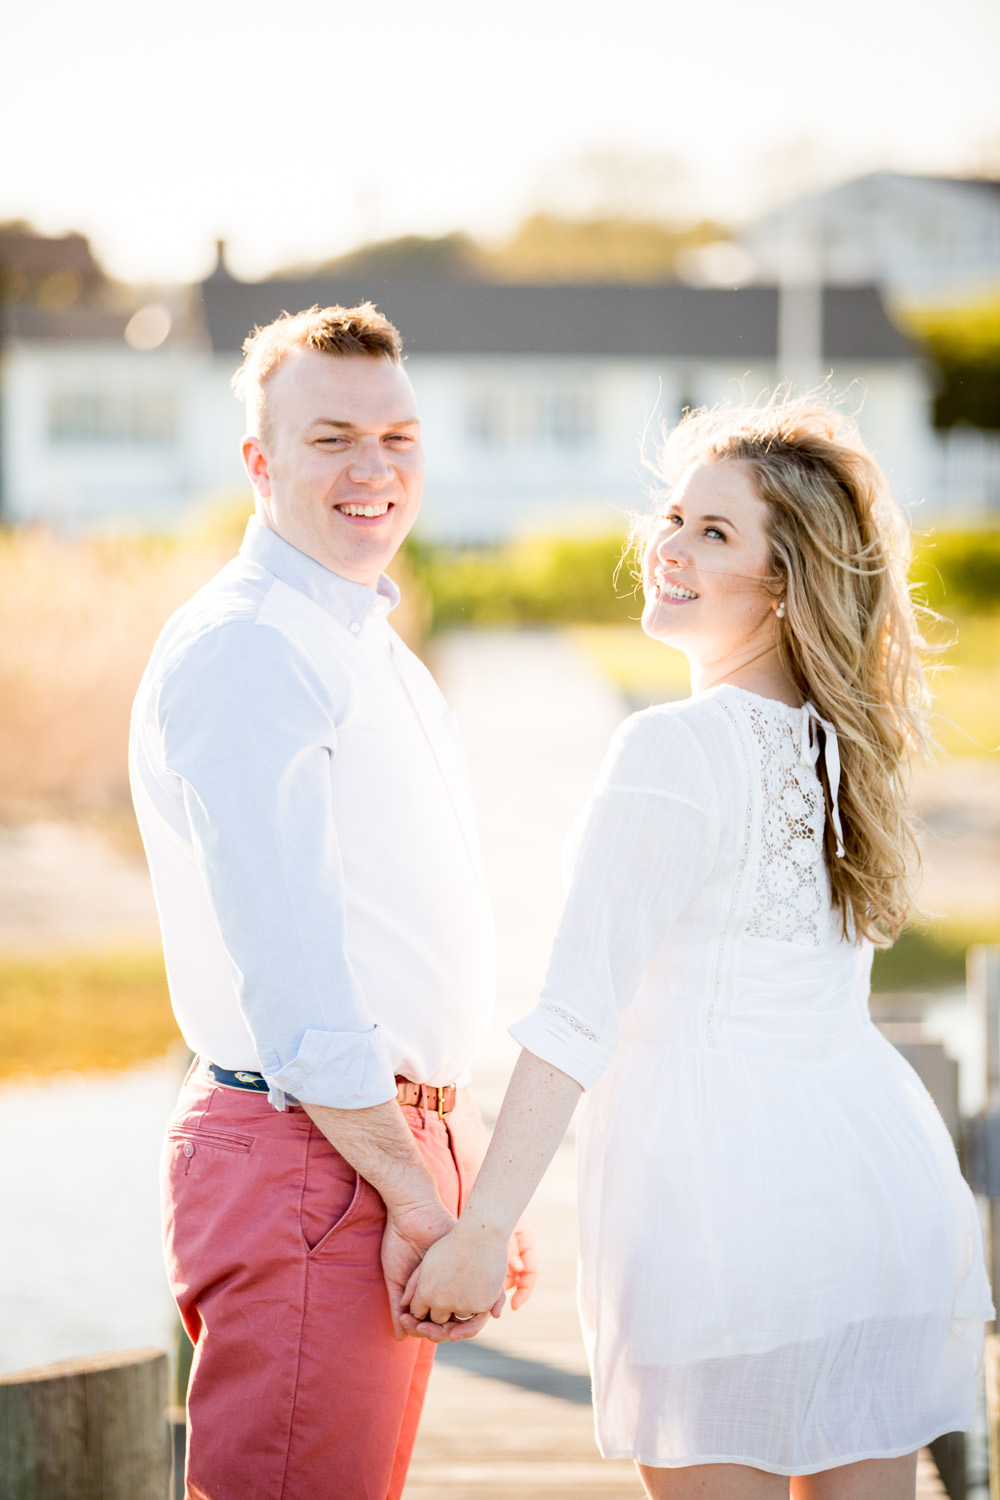 Tracey Buyce Engagement Photography52.jpg